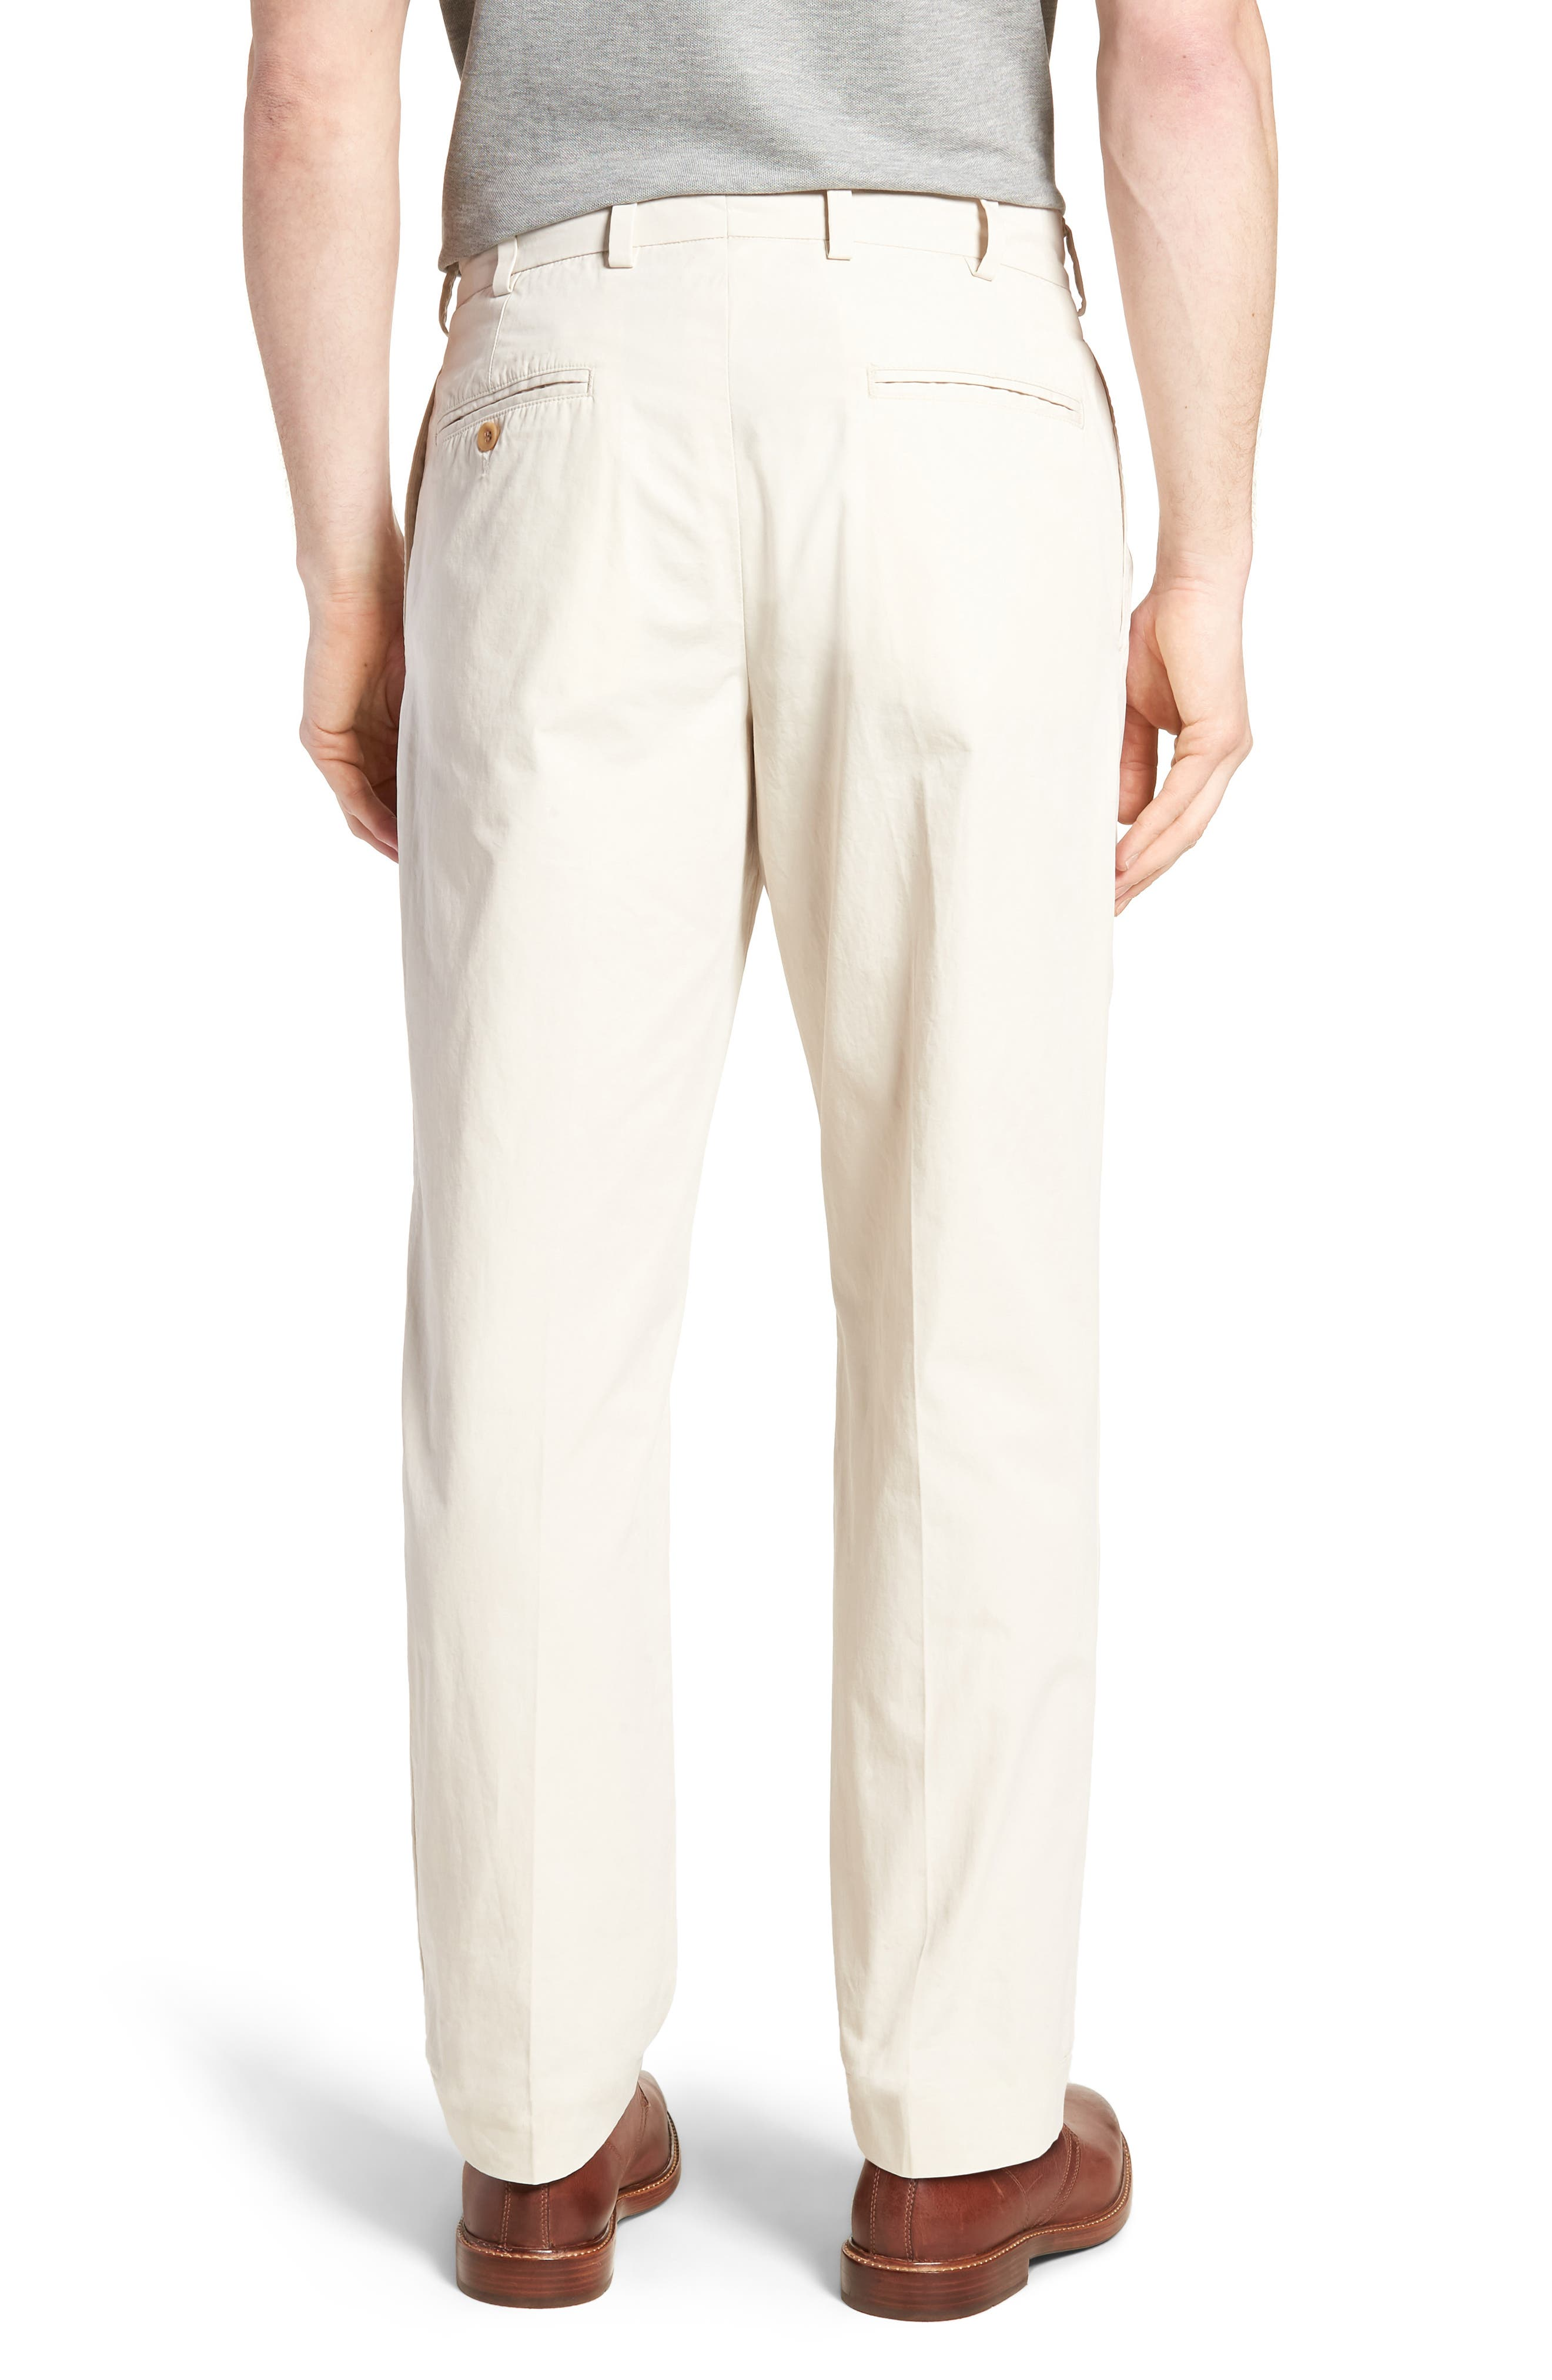 M2 Classic Fit Pleated Tropical Cotton Poplin Pants,                             Alternate thumbnail 2, color,                             Sand